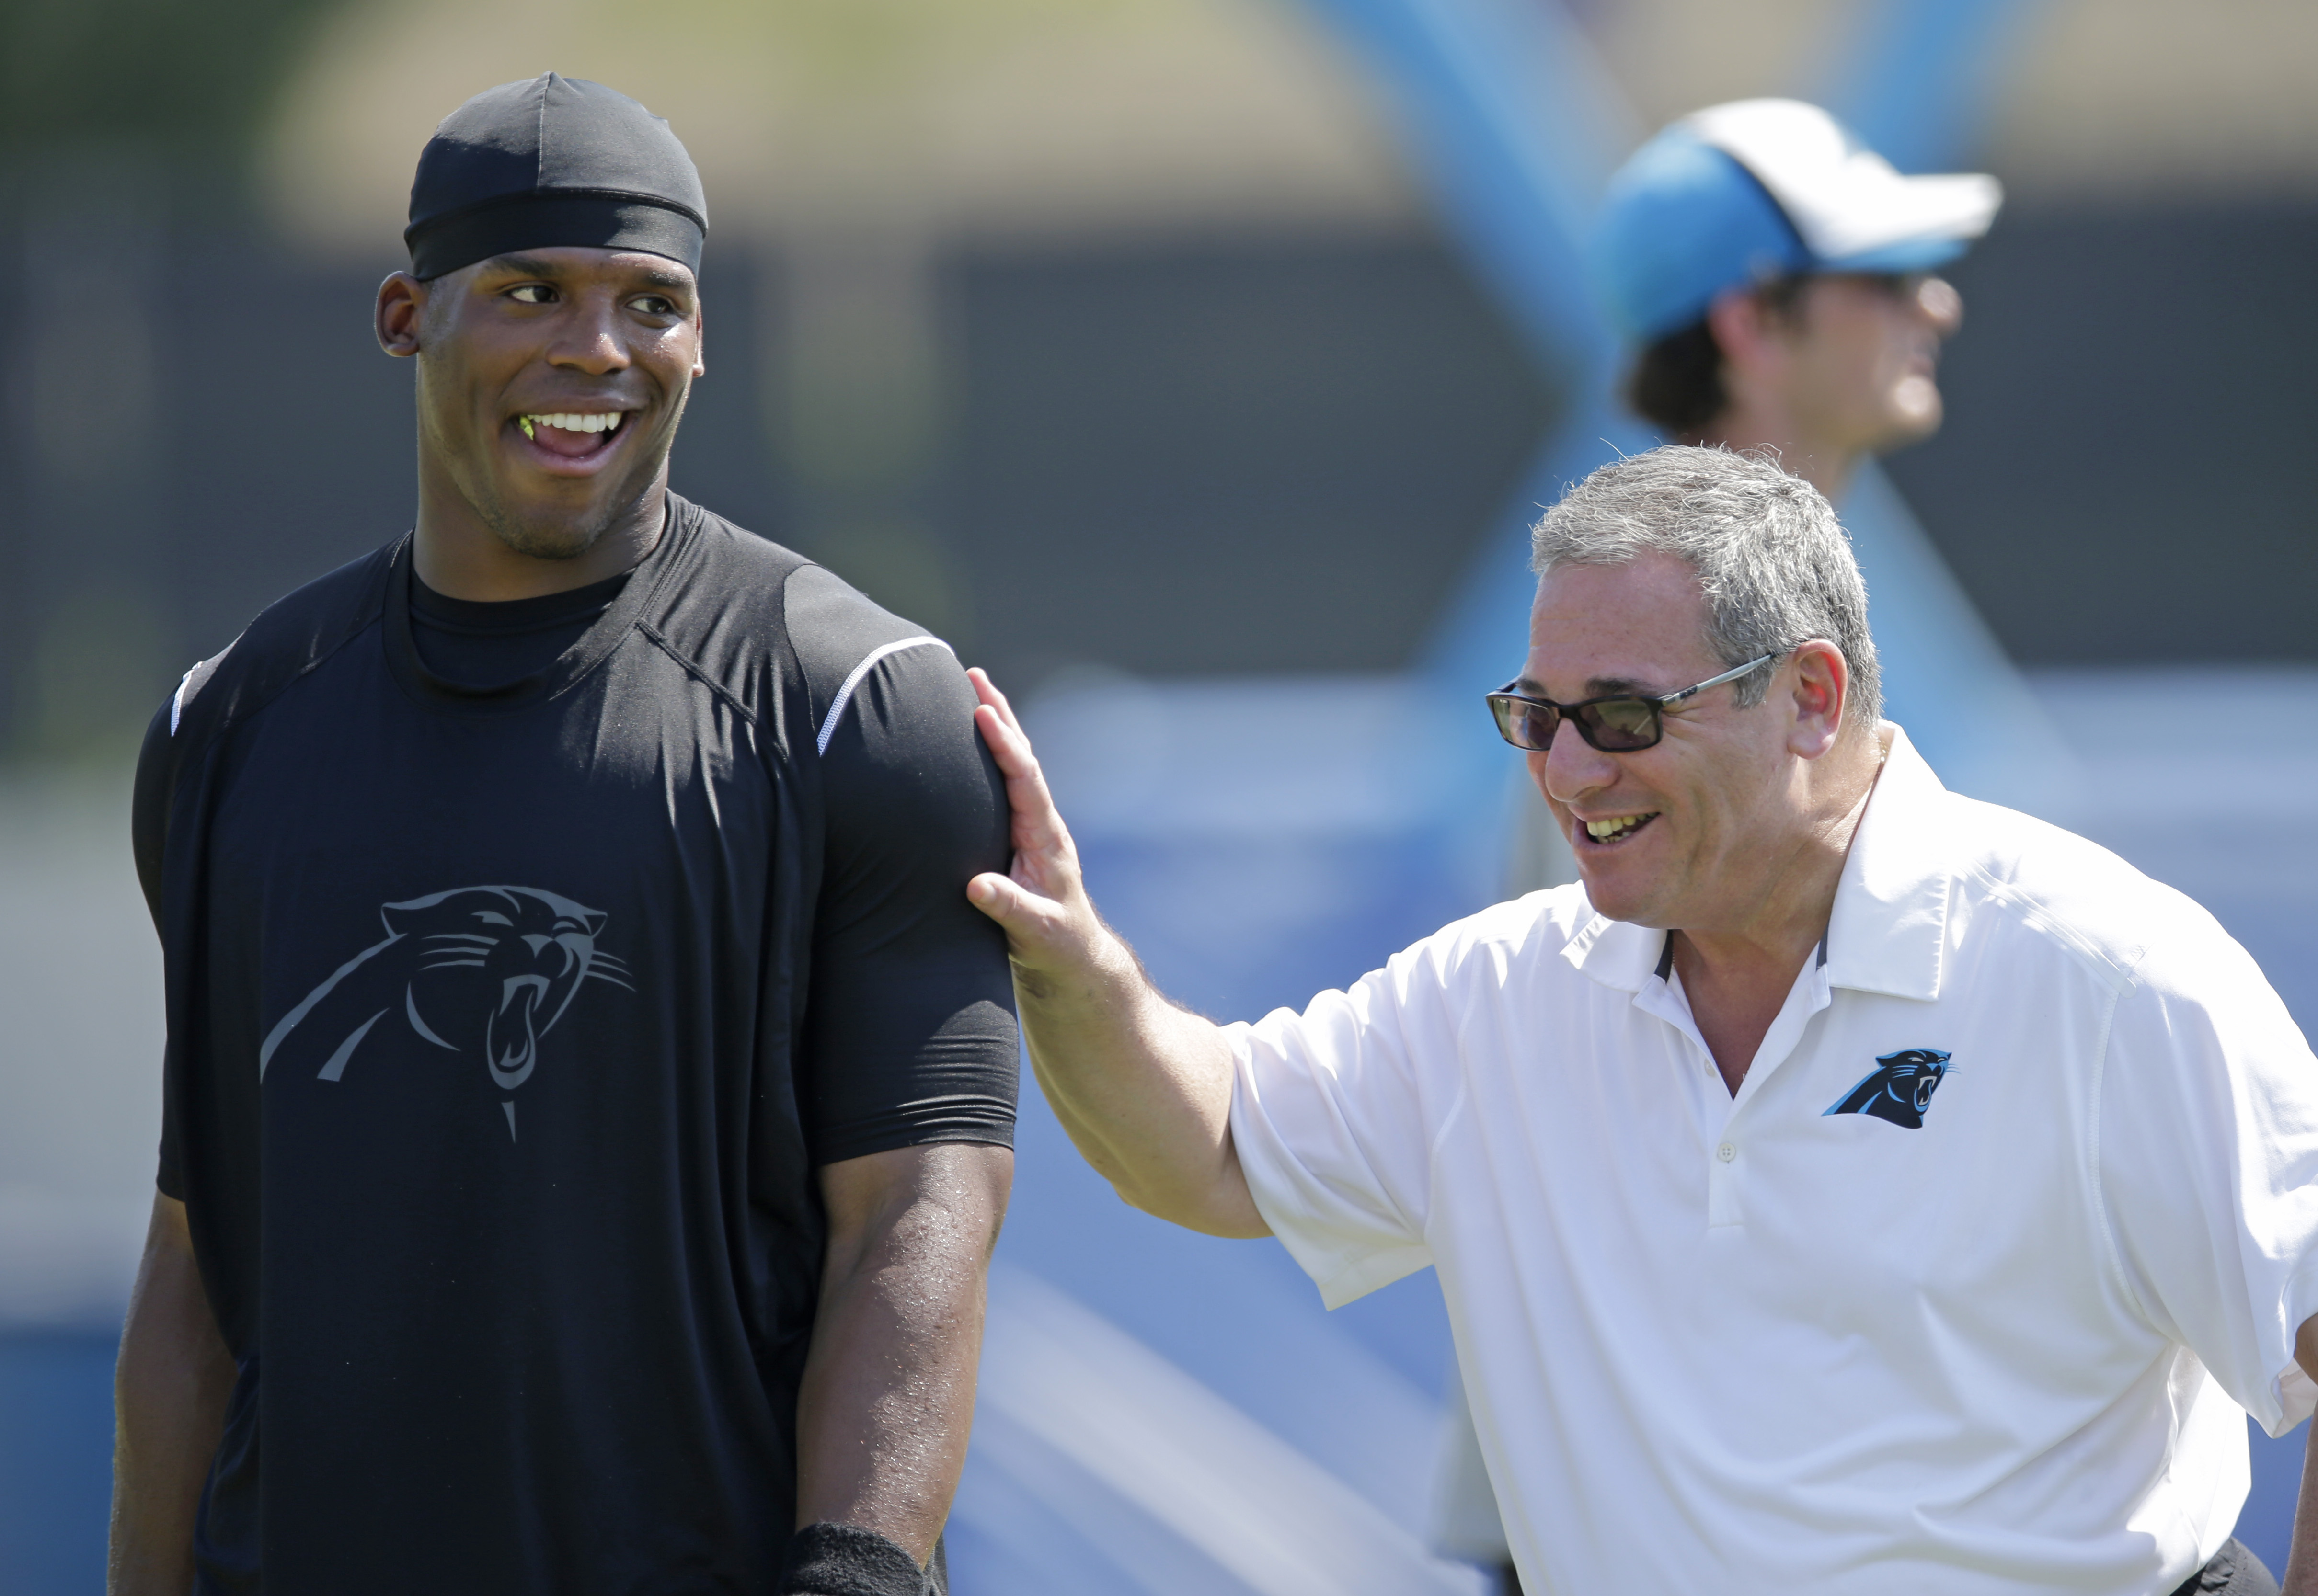 Carolina Panthers' Cam Newton, left, shares a laugh with general manager Dave Gettleman, right, after a practice during the NFL team's minicamp in Charlotte, N.C., Thursday, June 18, 2015. (AP Photo/Chuck Burton)